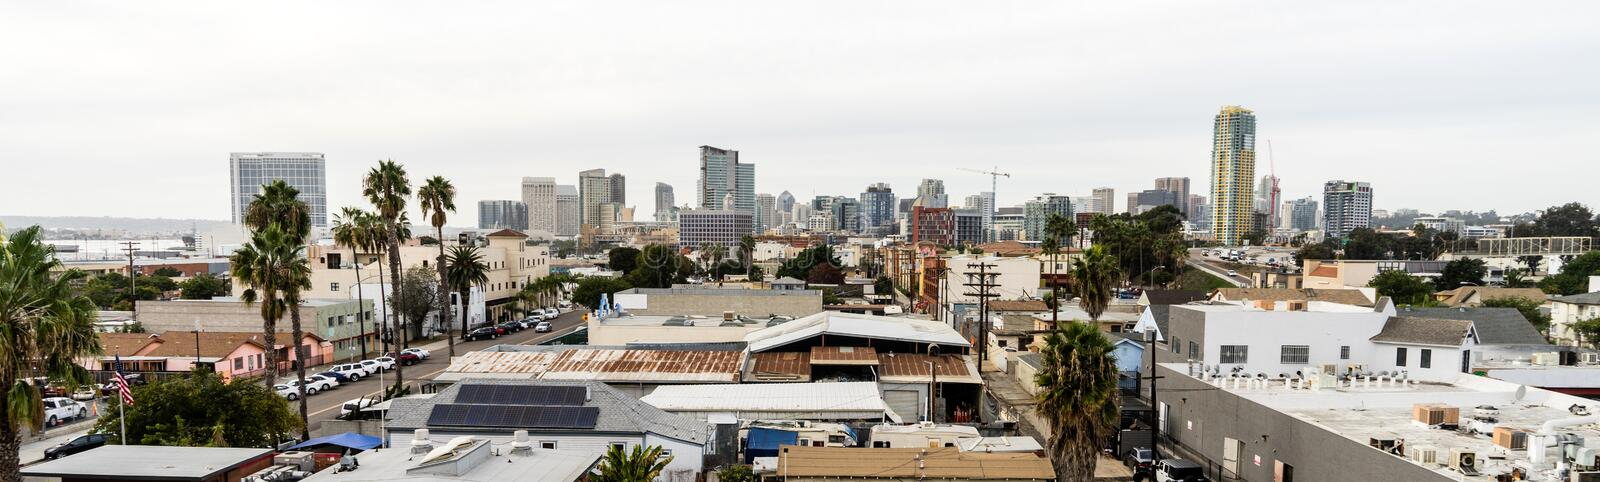 San Diego South End Bario Downtown City Skyline. Palm trees and buildings are dense in the south end of San Diego California royalty free stock photos